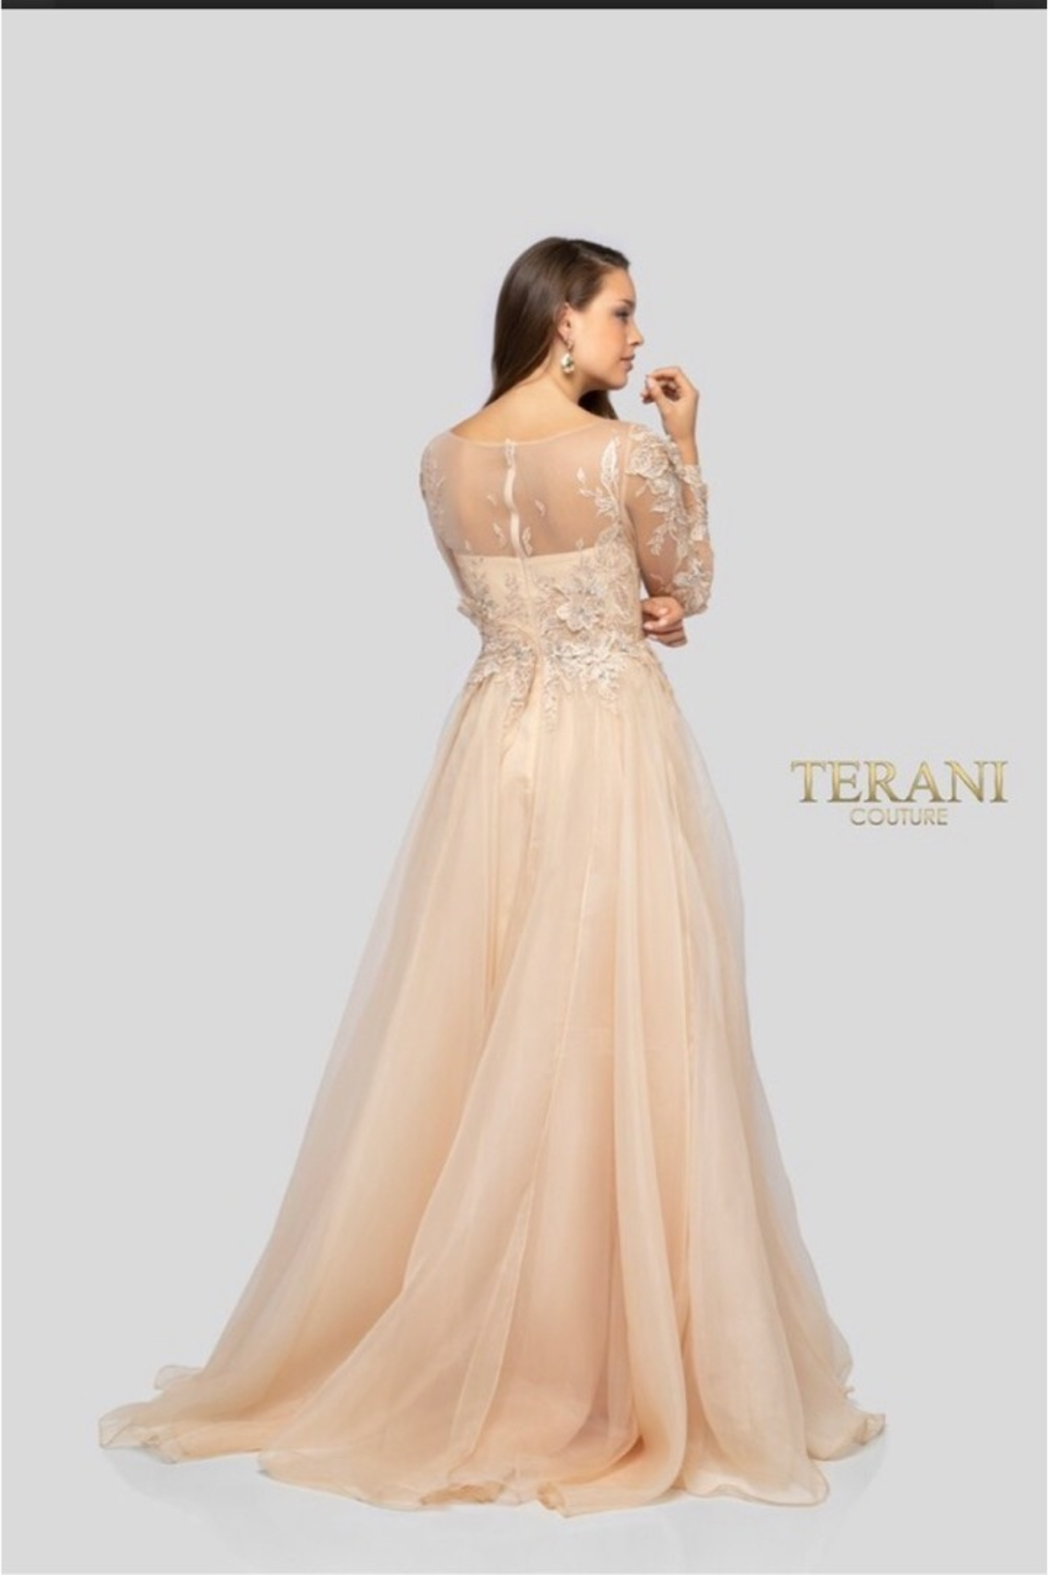 Terani Couture PEACH BLOSSOM GOWN - Side Cropped Image